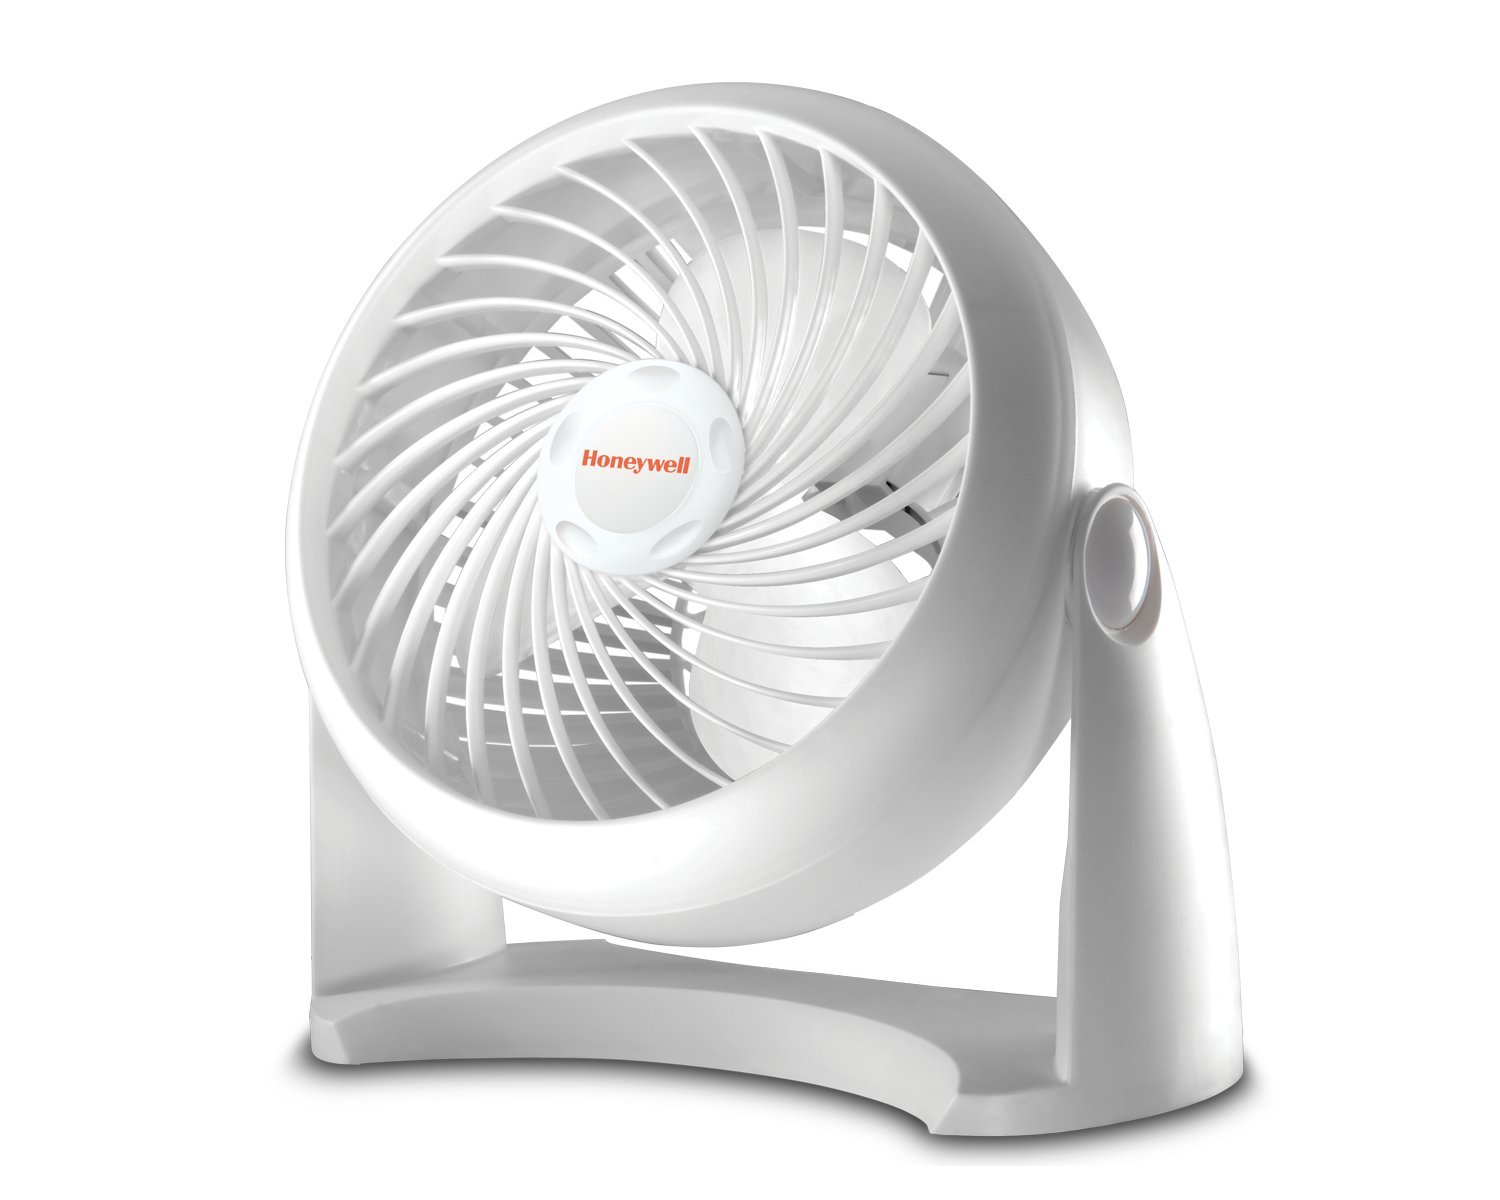 Honeywell HT 904 Tabletop Air Circulator White